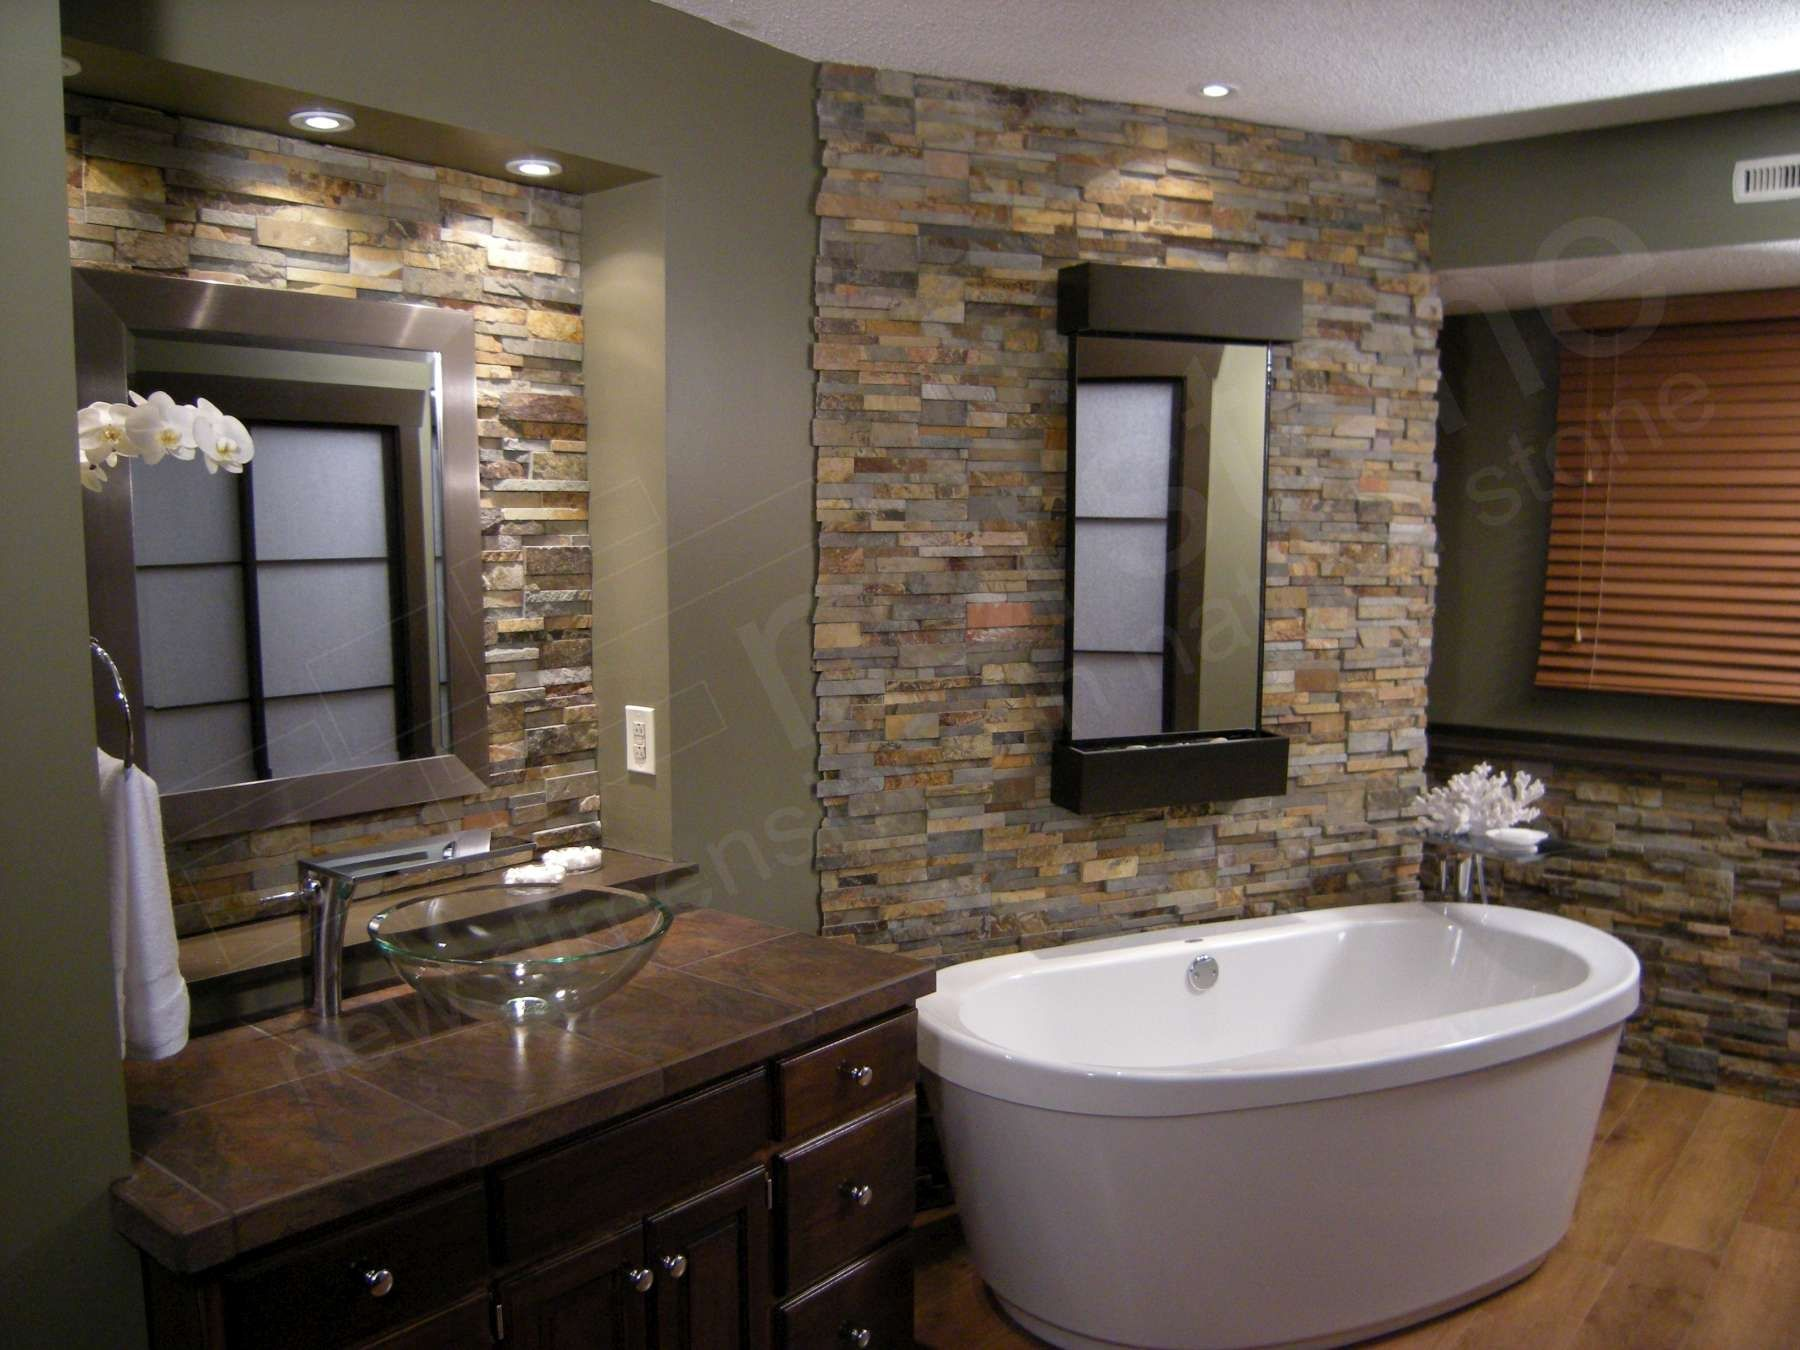 stone wall bathroom ideas Stone on the walls gives this bathroom